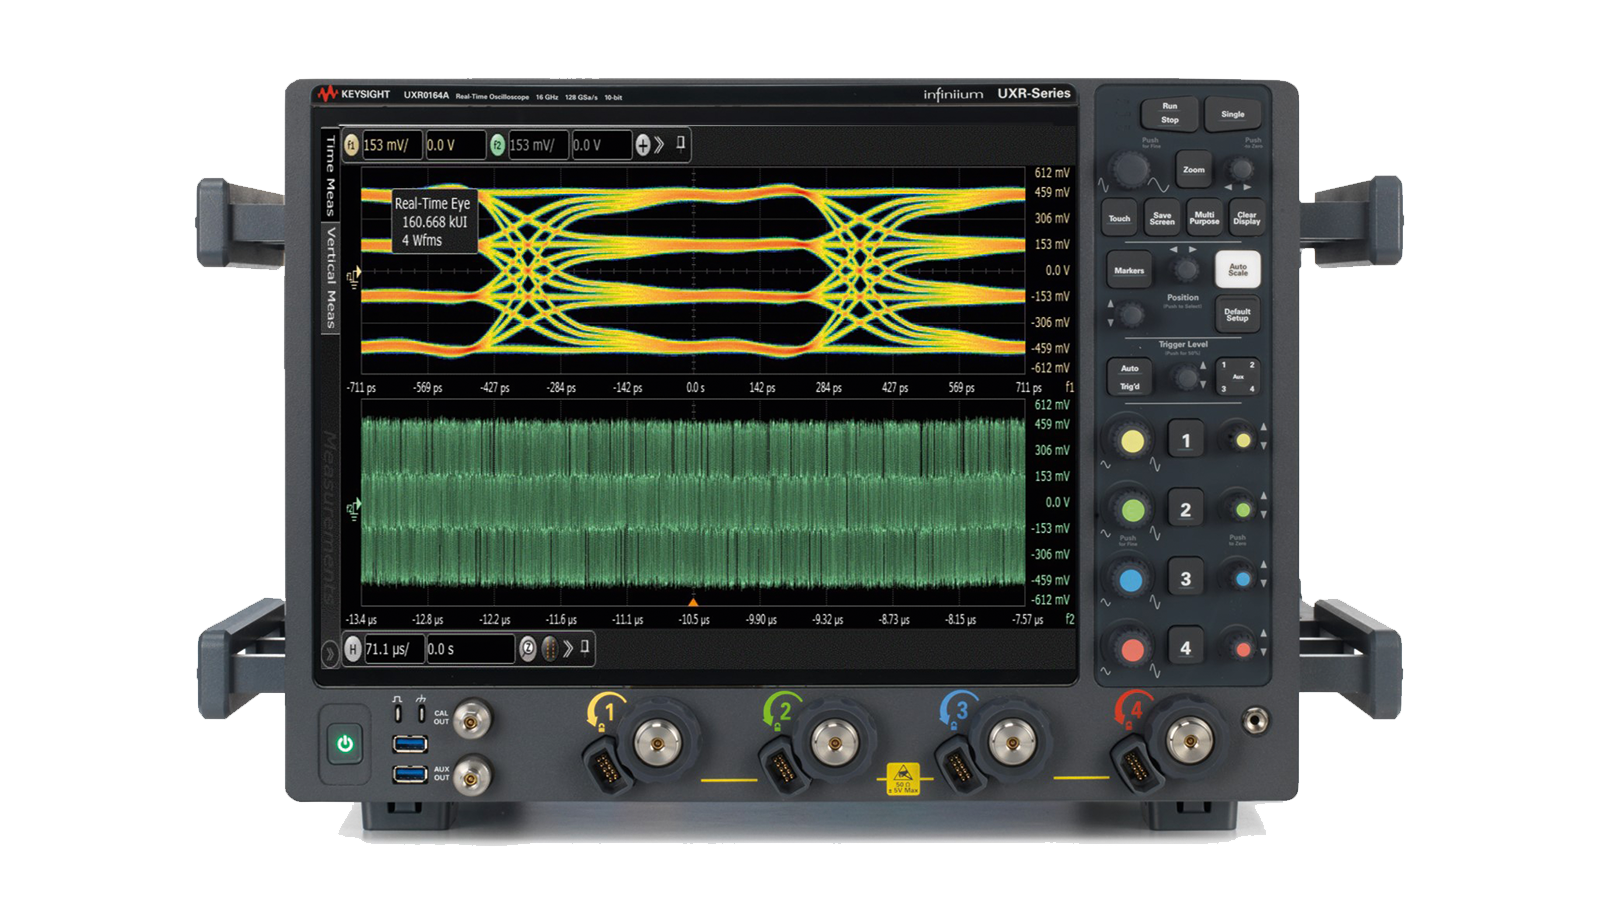 AE6920T automotive Ethernet transmit compliance application runs on Keysight UXR and V-series oscilloscopes.